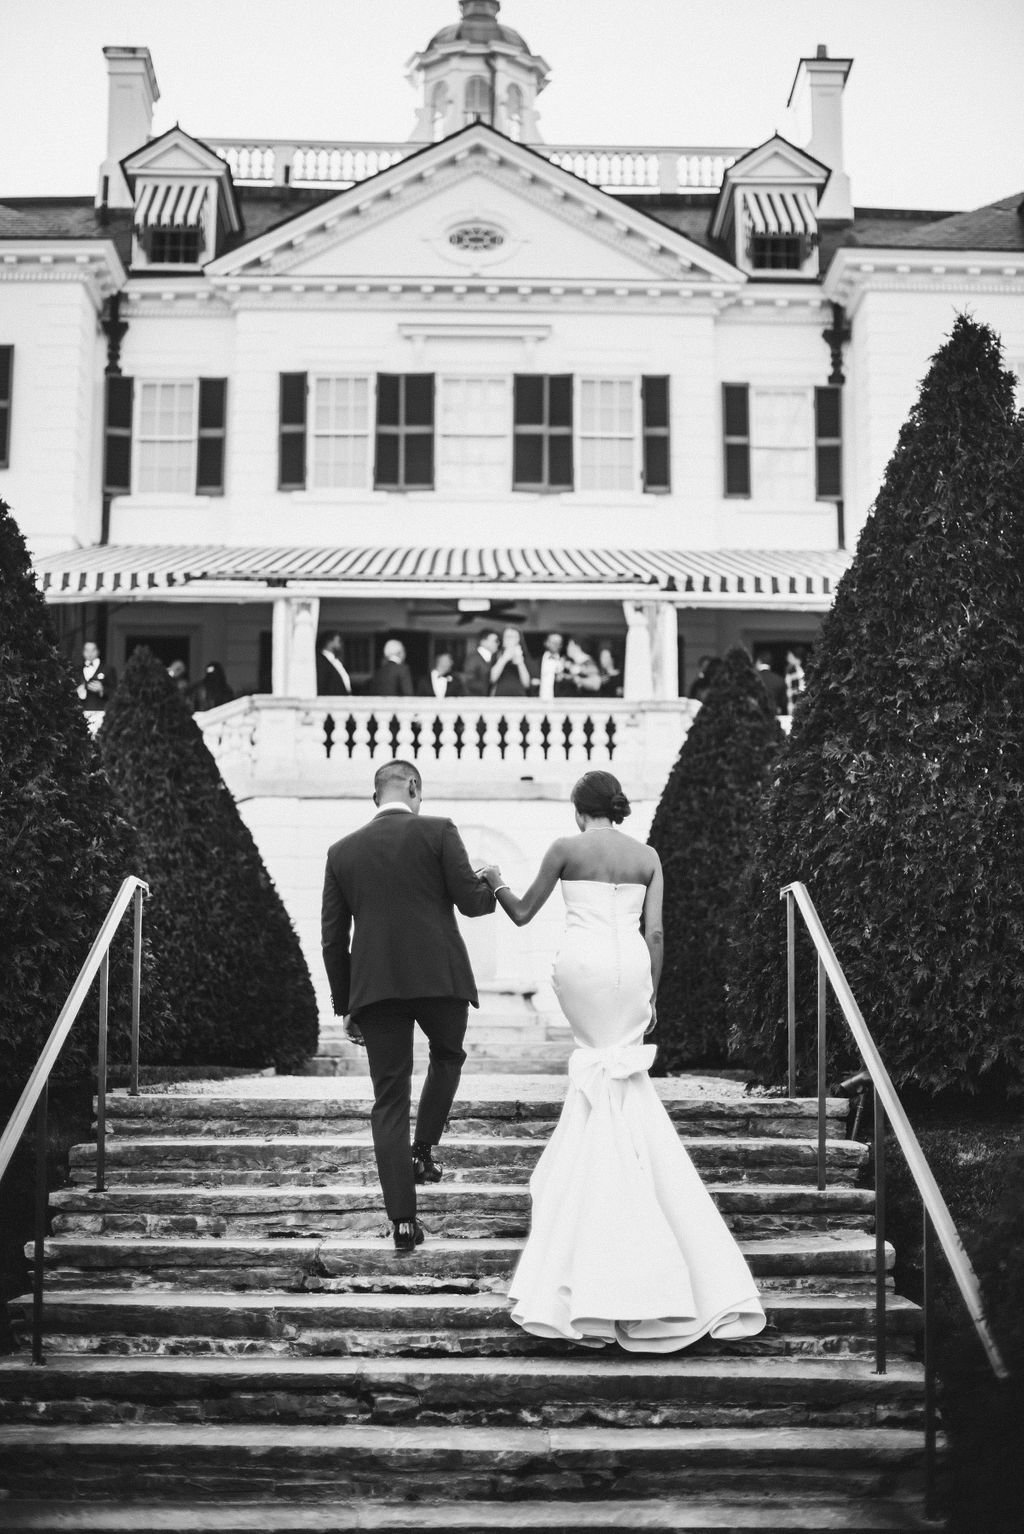 Tim-Will-Photography-Monica-Relyea-Events-The-Mount-Massachusetes-Berkshires-Cotober-Wedding-Hudson-Valley-Planner-Stockbridge-fall-Blantyre-Hotel-luxury-bespoke-Cranwell-castellano0169